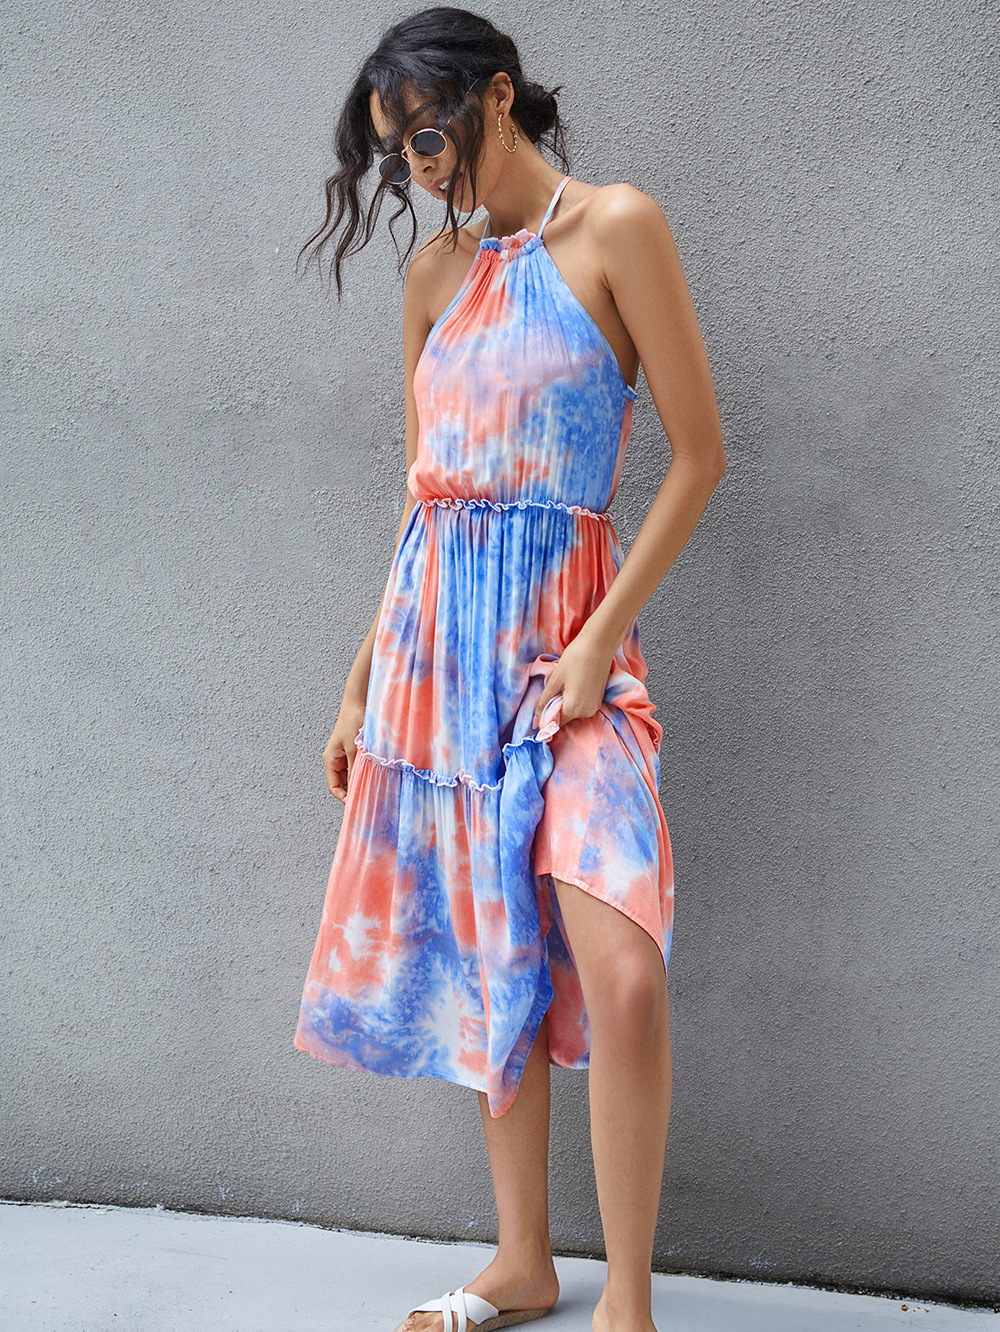 summer new fashion hot style sexy bandage strapless bow tie-dye dress NSDF1291